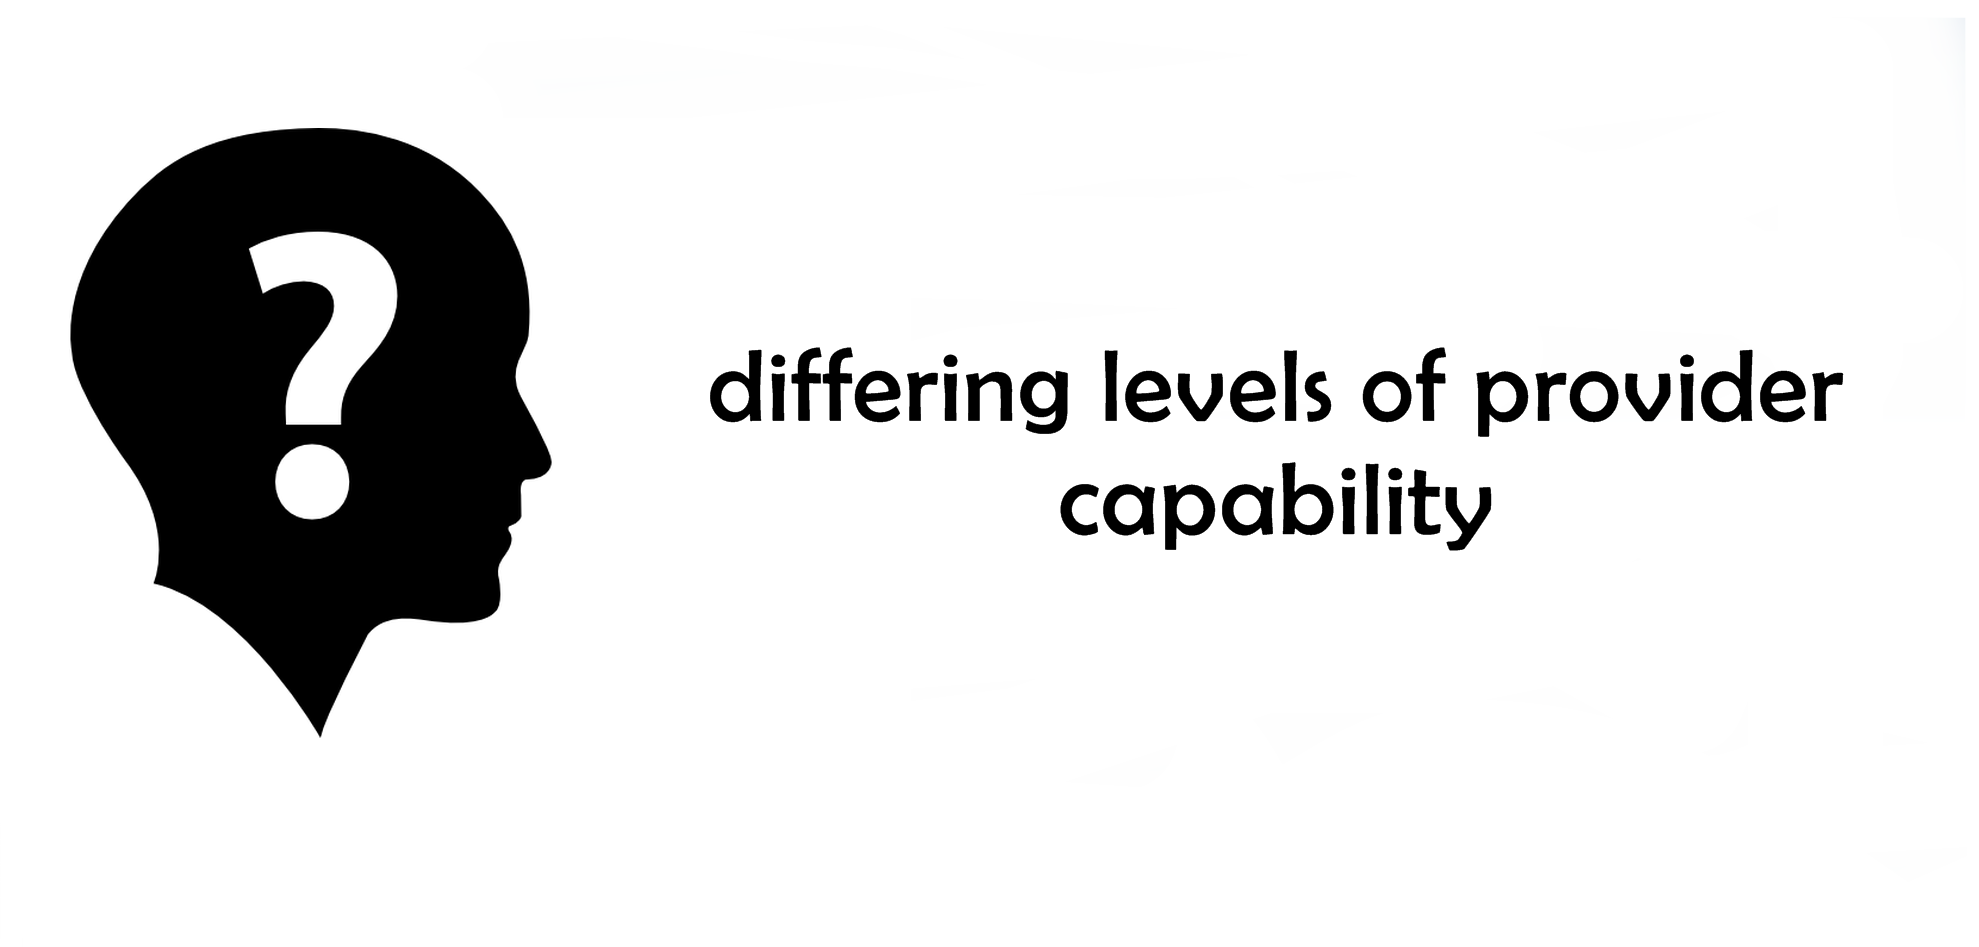 differing levels of provider capability